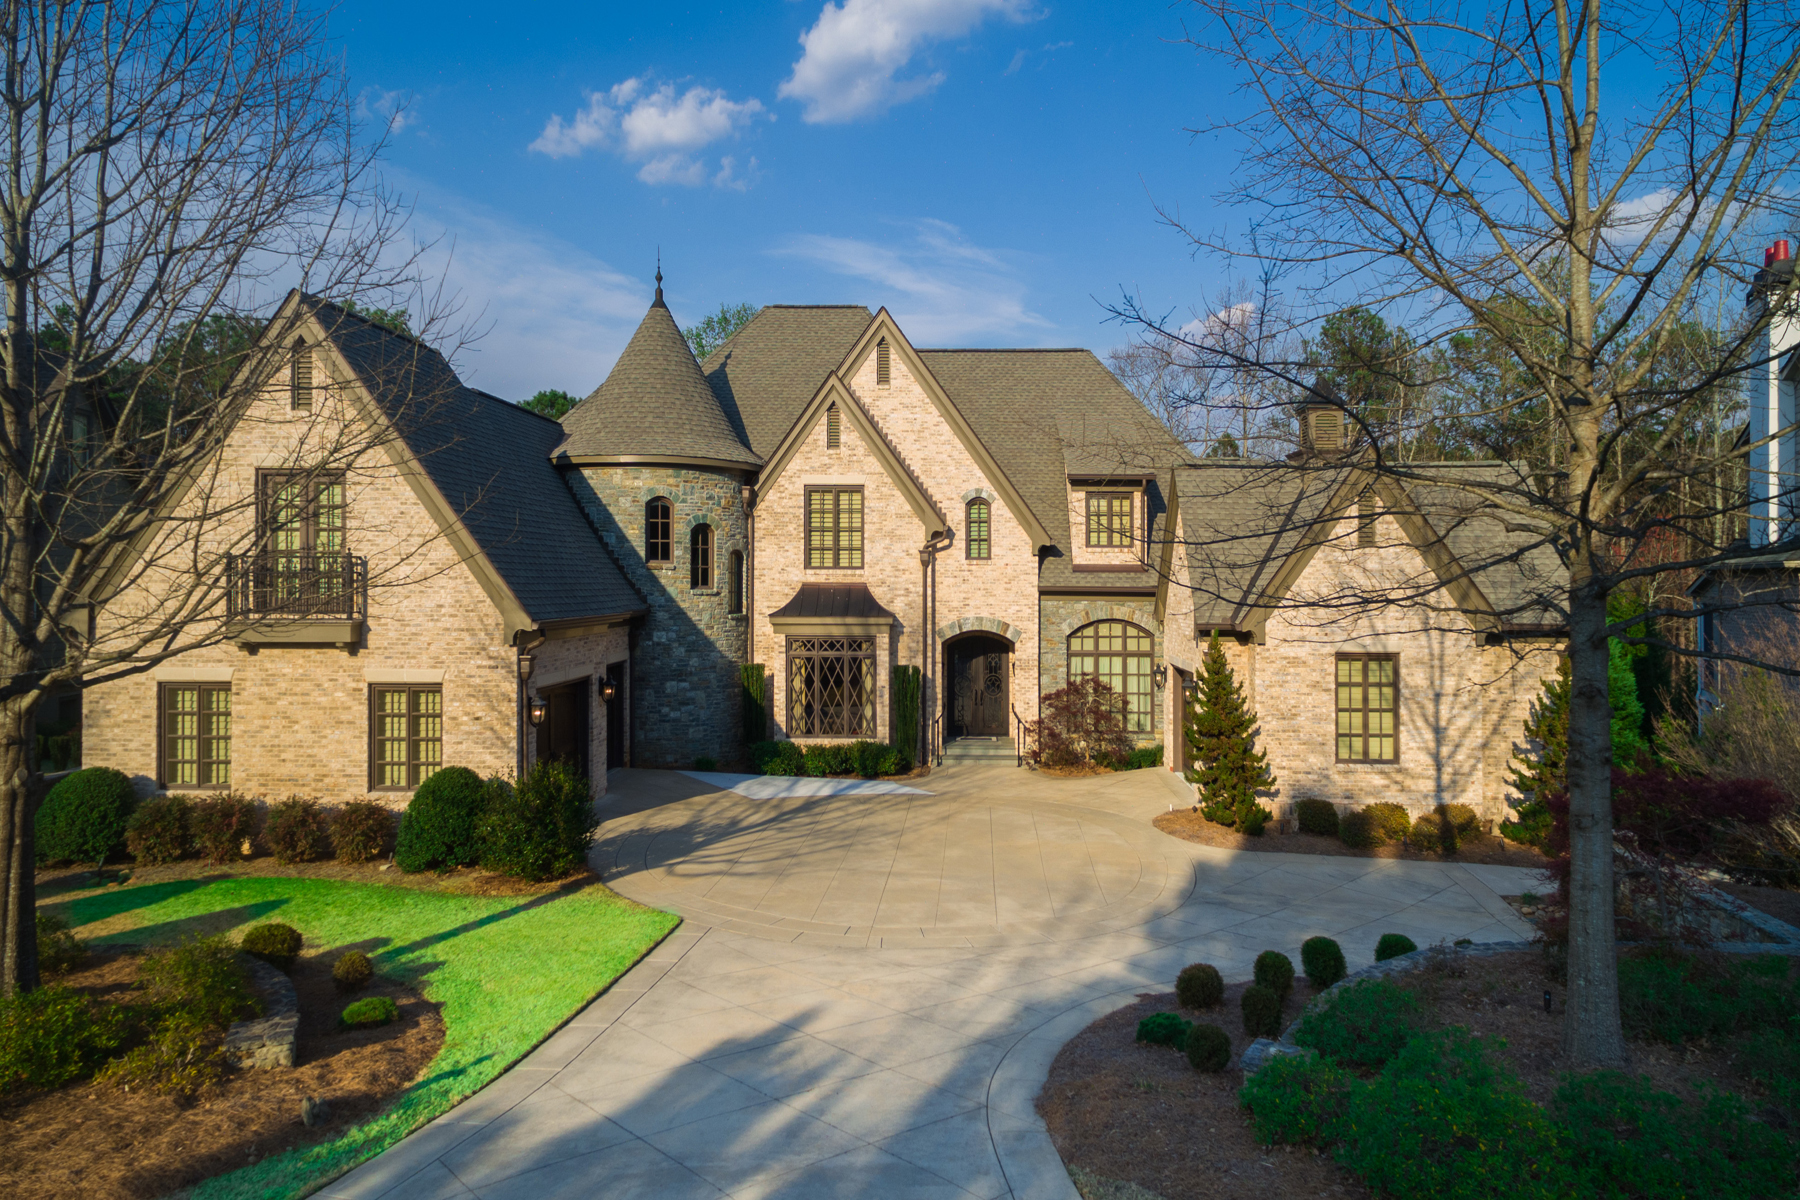 Single Family Home for Sale at French Normandy Masterpiece In Peachtree City 204 Brookings Lane Peachtree City, Georgia 30269 United States